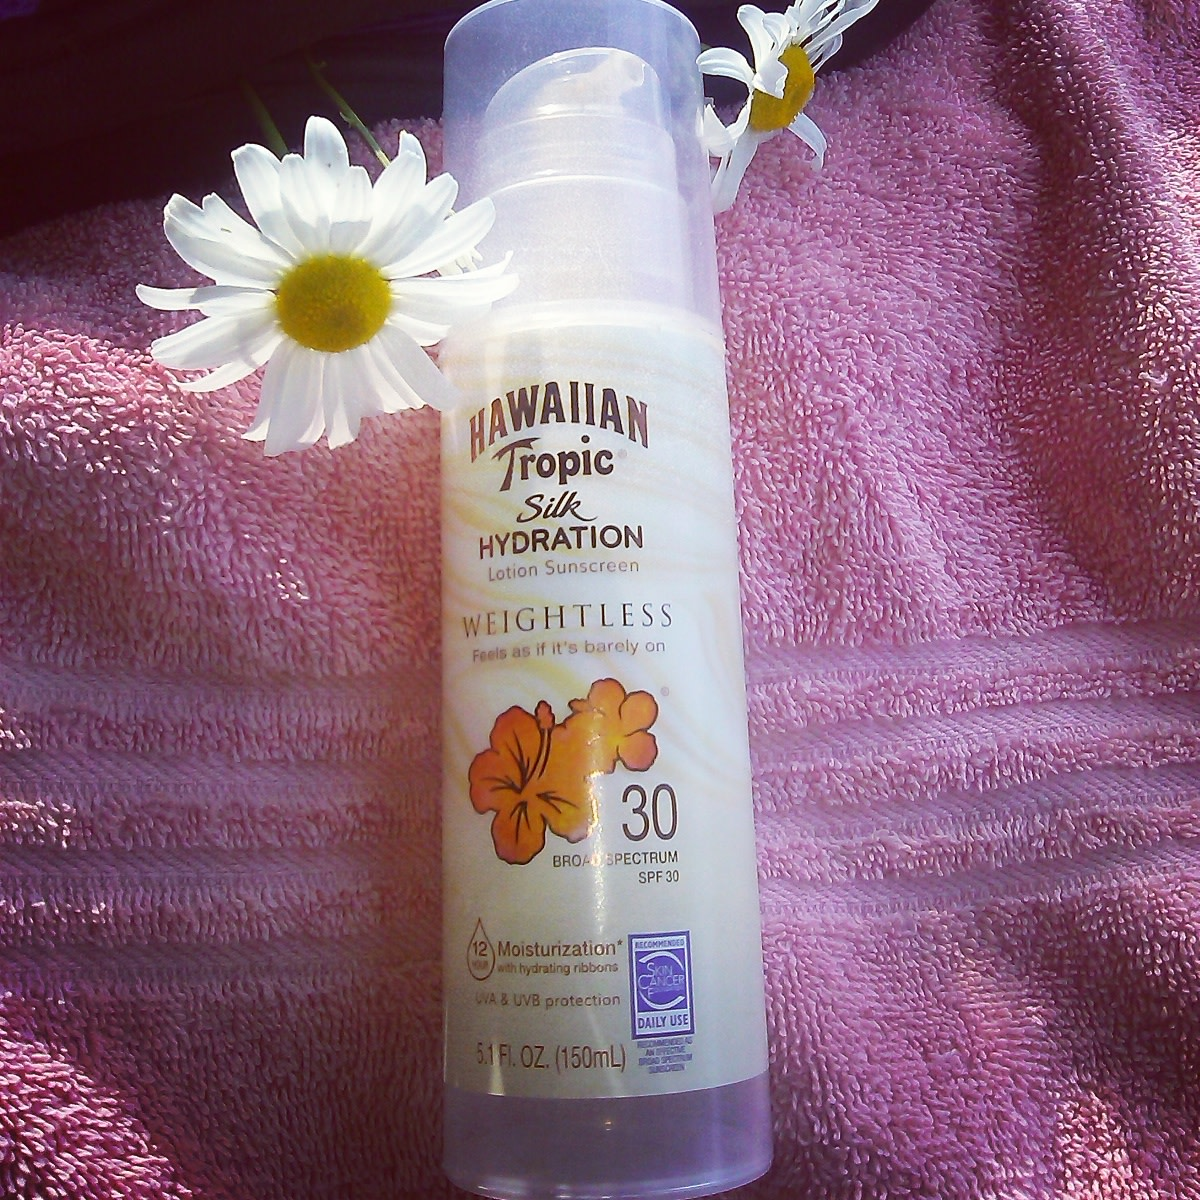 Hawaiian Tropic Silk Hydration: My Favorite Sunscreen Lotion